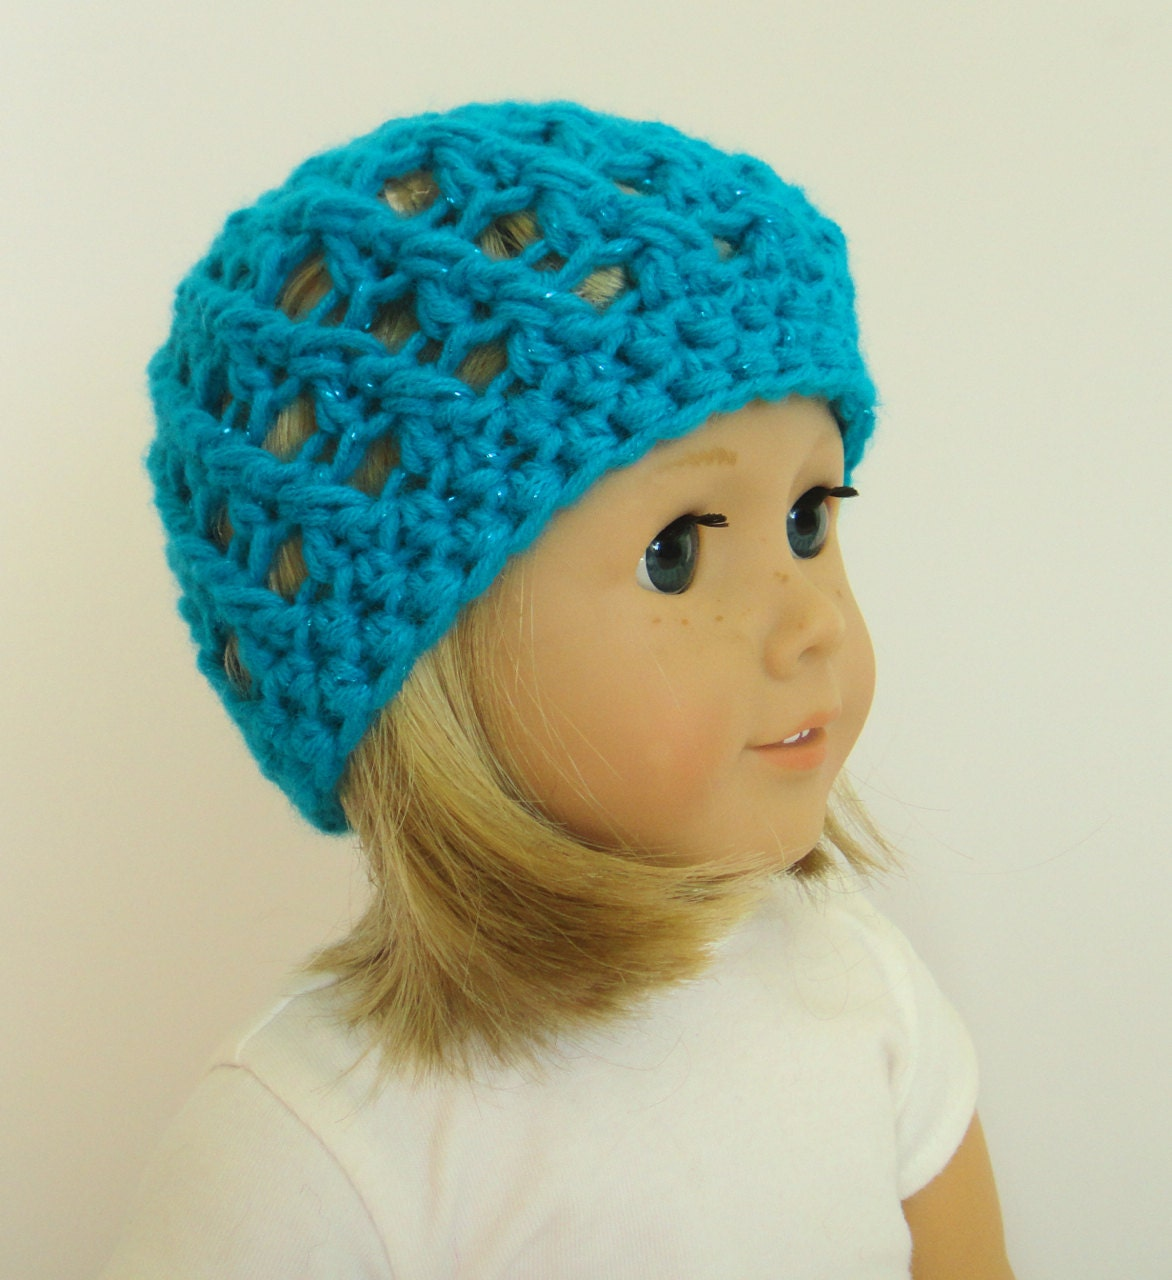 Knitting Pattern For Dolls Beanie : Knit Doll Hat 18 Inch Doll Accessories Blue Doll Beanie